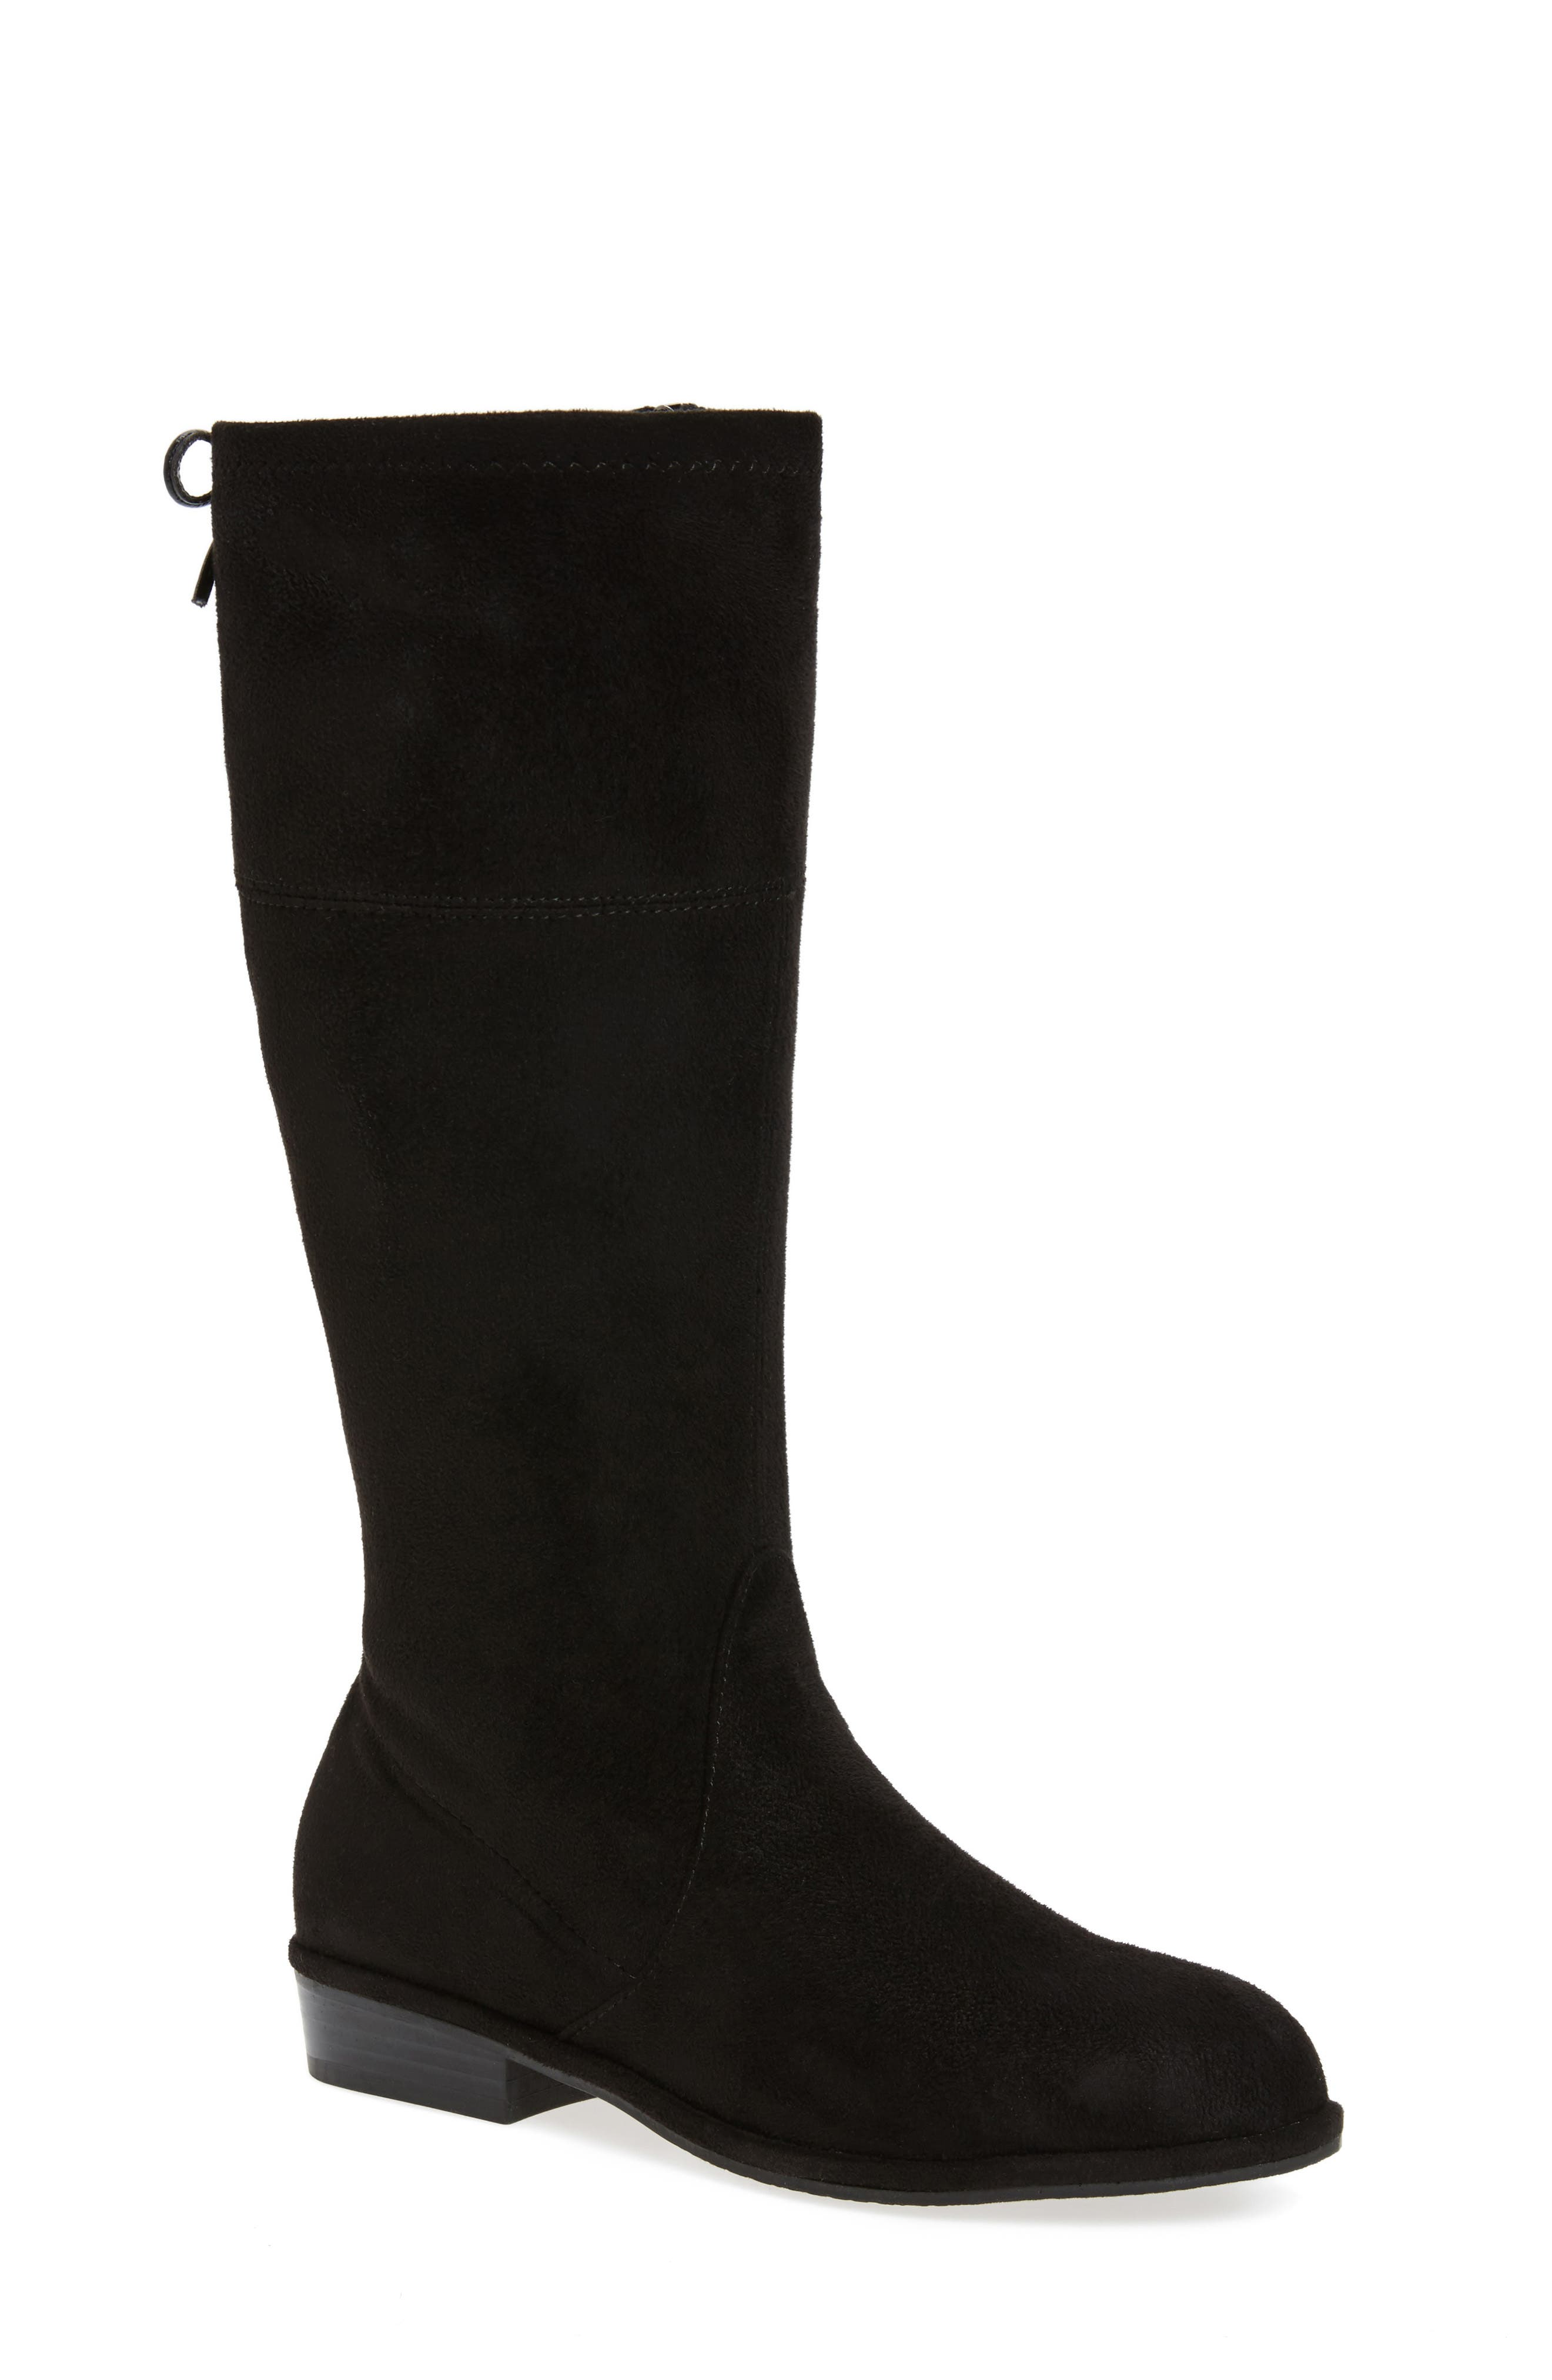 Stuart Weitzman Lowland Bow Riding Boot (Toddler, Little Kid & Big Kid)